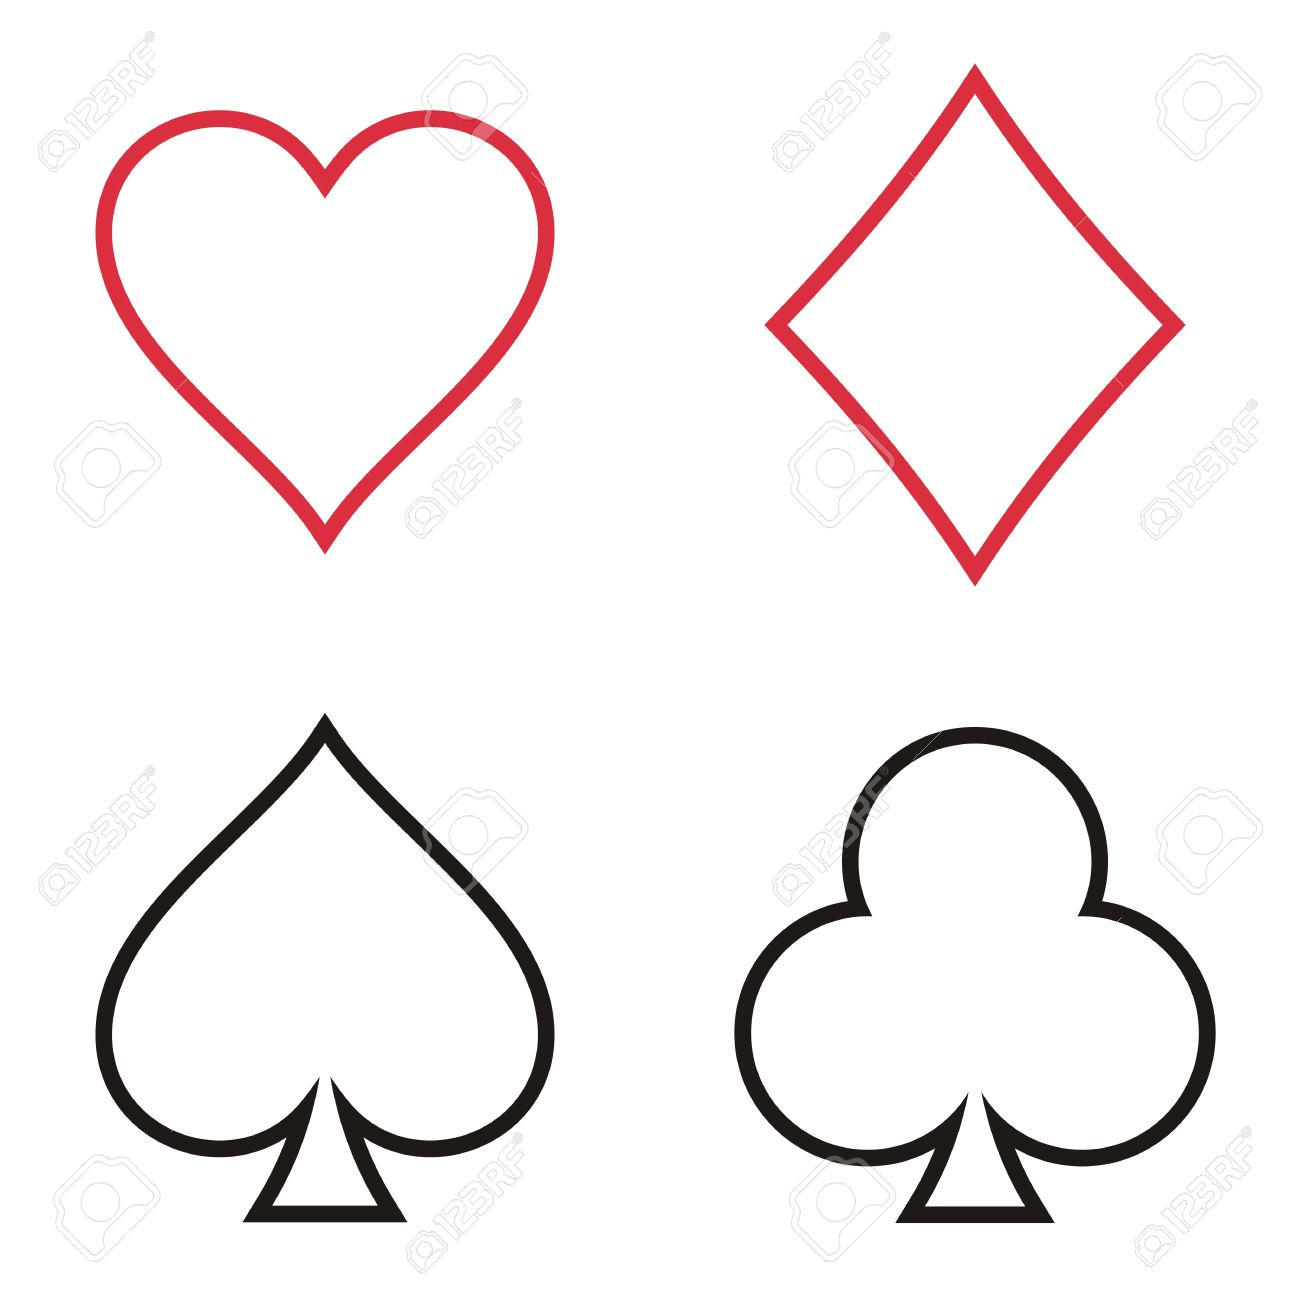 Playing cards outline symbols collection on white background playing cards outline symbols collection on white background stock vector 31371607 biocorpaavc